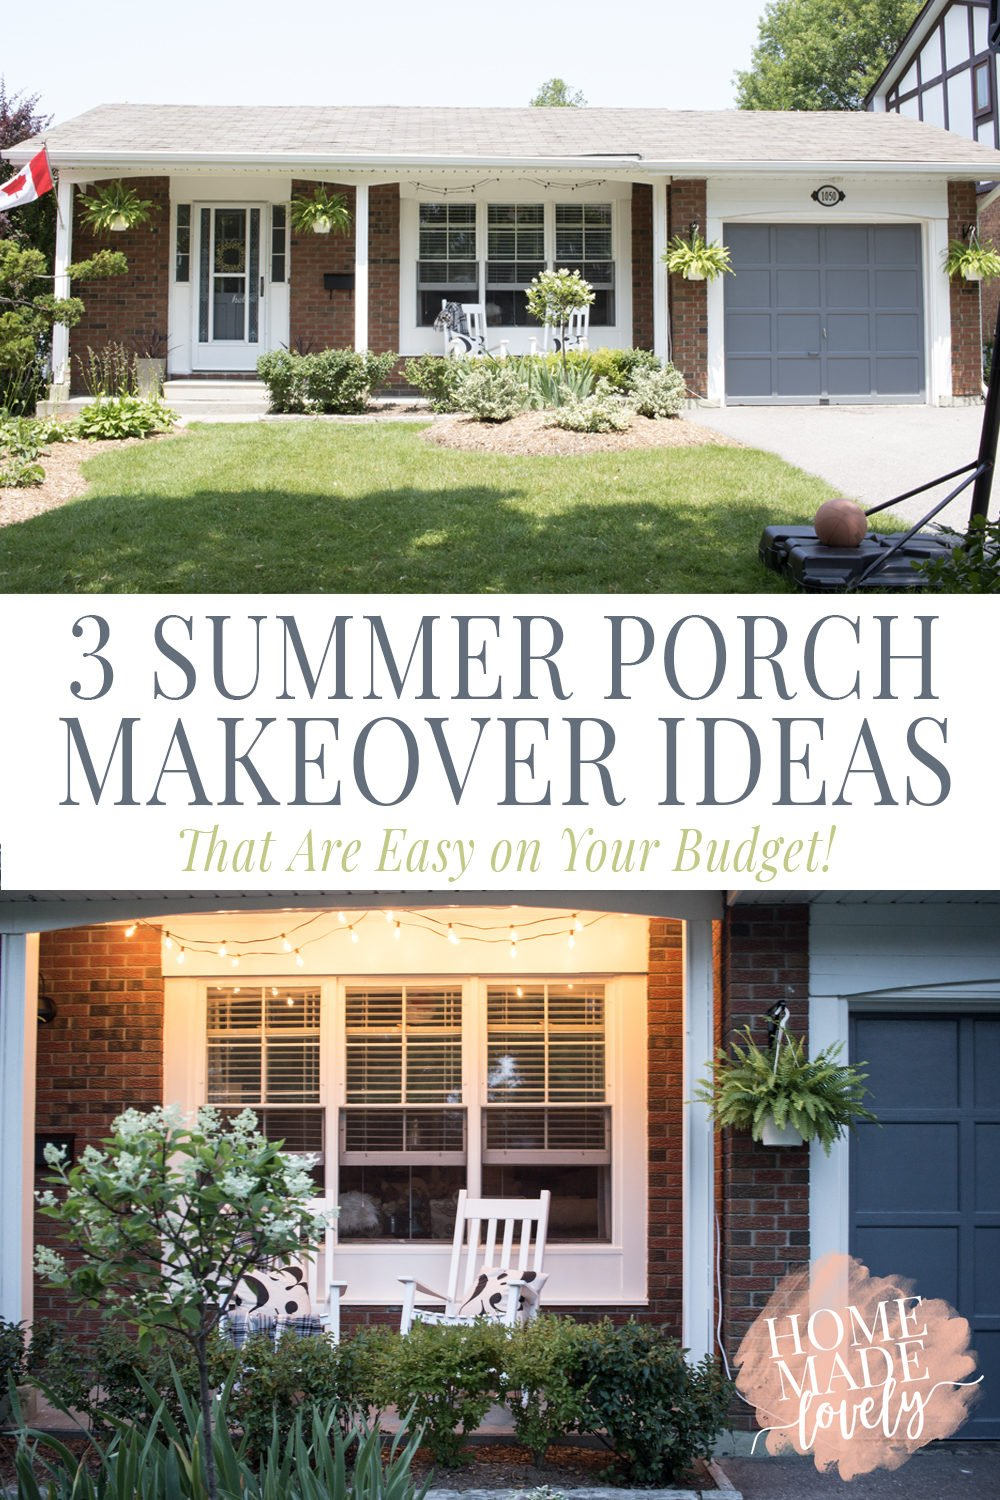 3 summer porch makeover ideas that are easy on your budget!